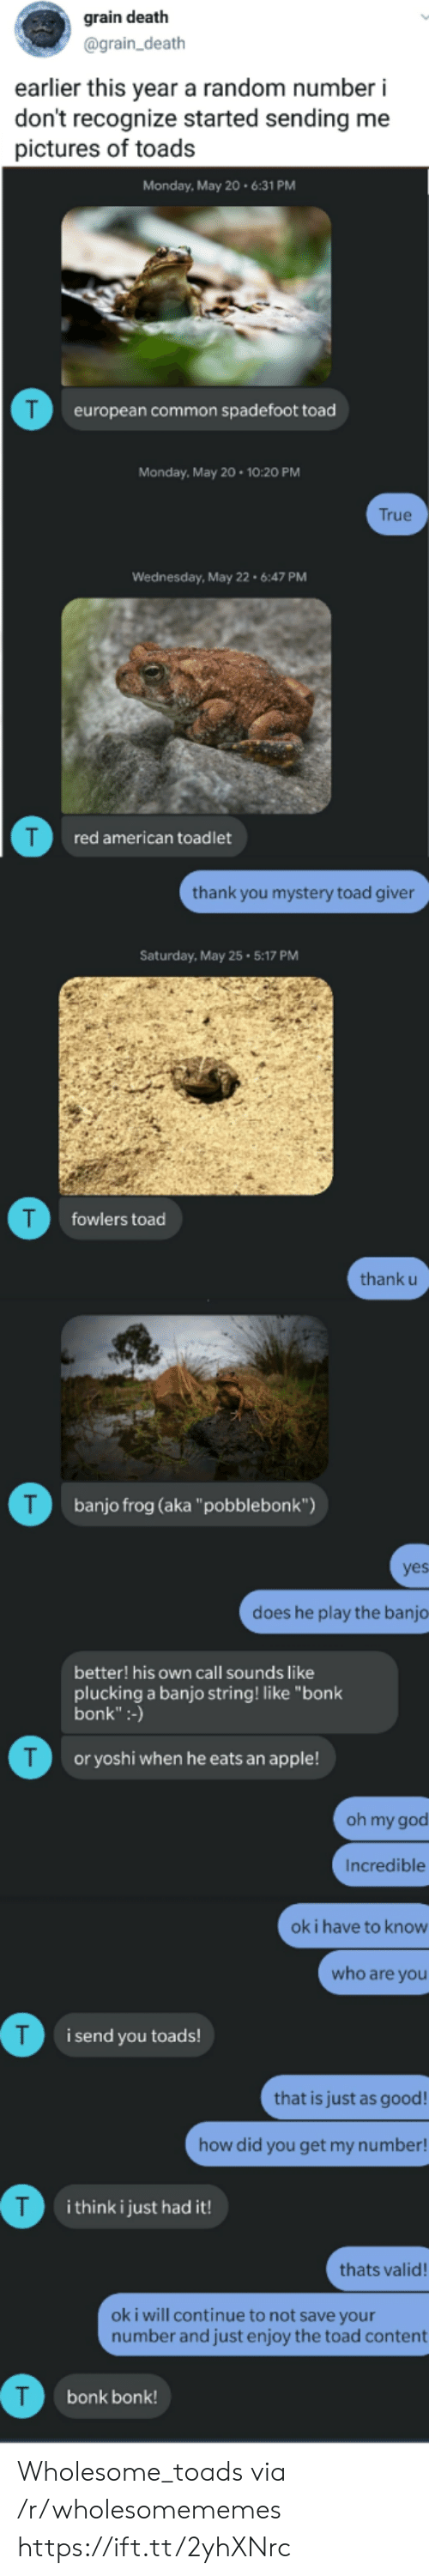 """Apple, God, and Oh My God: grain death  @grain_death  earlier this year a random number i  don't recognize started sending me  pictures of toads  Monday, May 20.6:31 PM  T  european common spadefoot toad  Monday, May 20 10:20 PM  True  Wednesday, May 22 6:47 PM  red american toadlet  thank you mystery toad giver  Saturday, May 25 5:17 PM  T  fowlers toad  thank u  T  banjo frog (aka""""pobblebonk"""")  yes  does he play the banjo  better! his own call sounds like  plucking a banjo string! like """"bonk  bonk"""":-)  T  or yoshi when he eats an apple!  oh my god  Incredible  ok i have to know  who are you  i send you toads!  that is just as good!  how did you get my number!  T  i think i just had it!  thats valid!  oki will continue to not save your  number and just enjoy the toad content  bonk bonk! Wholesome_toads via /r/wholesomememes https://ift.tt/2yhXNrc"""